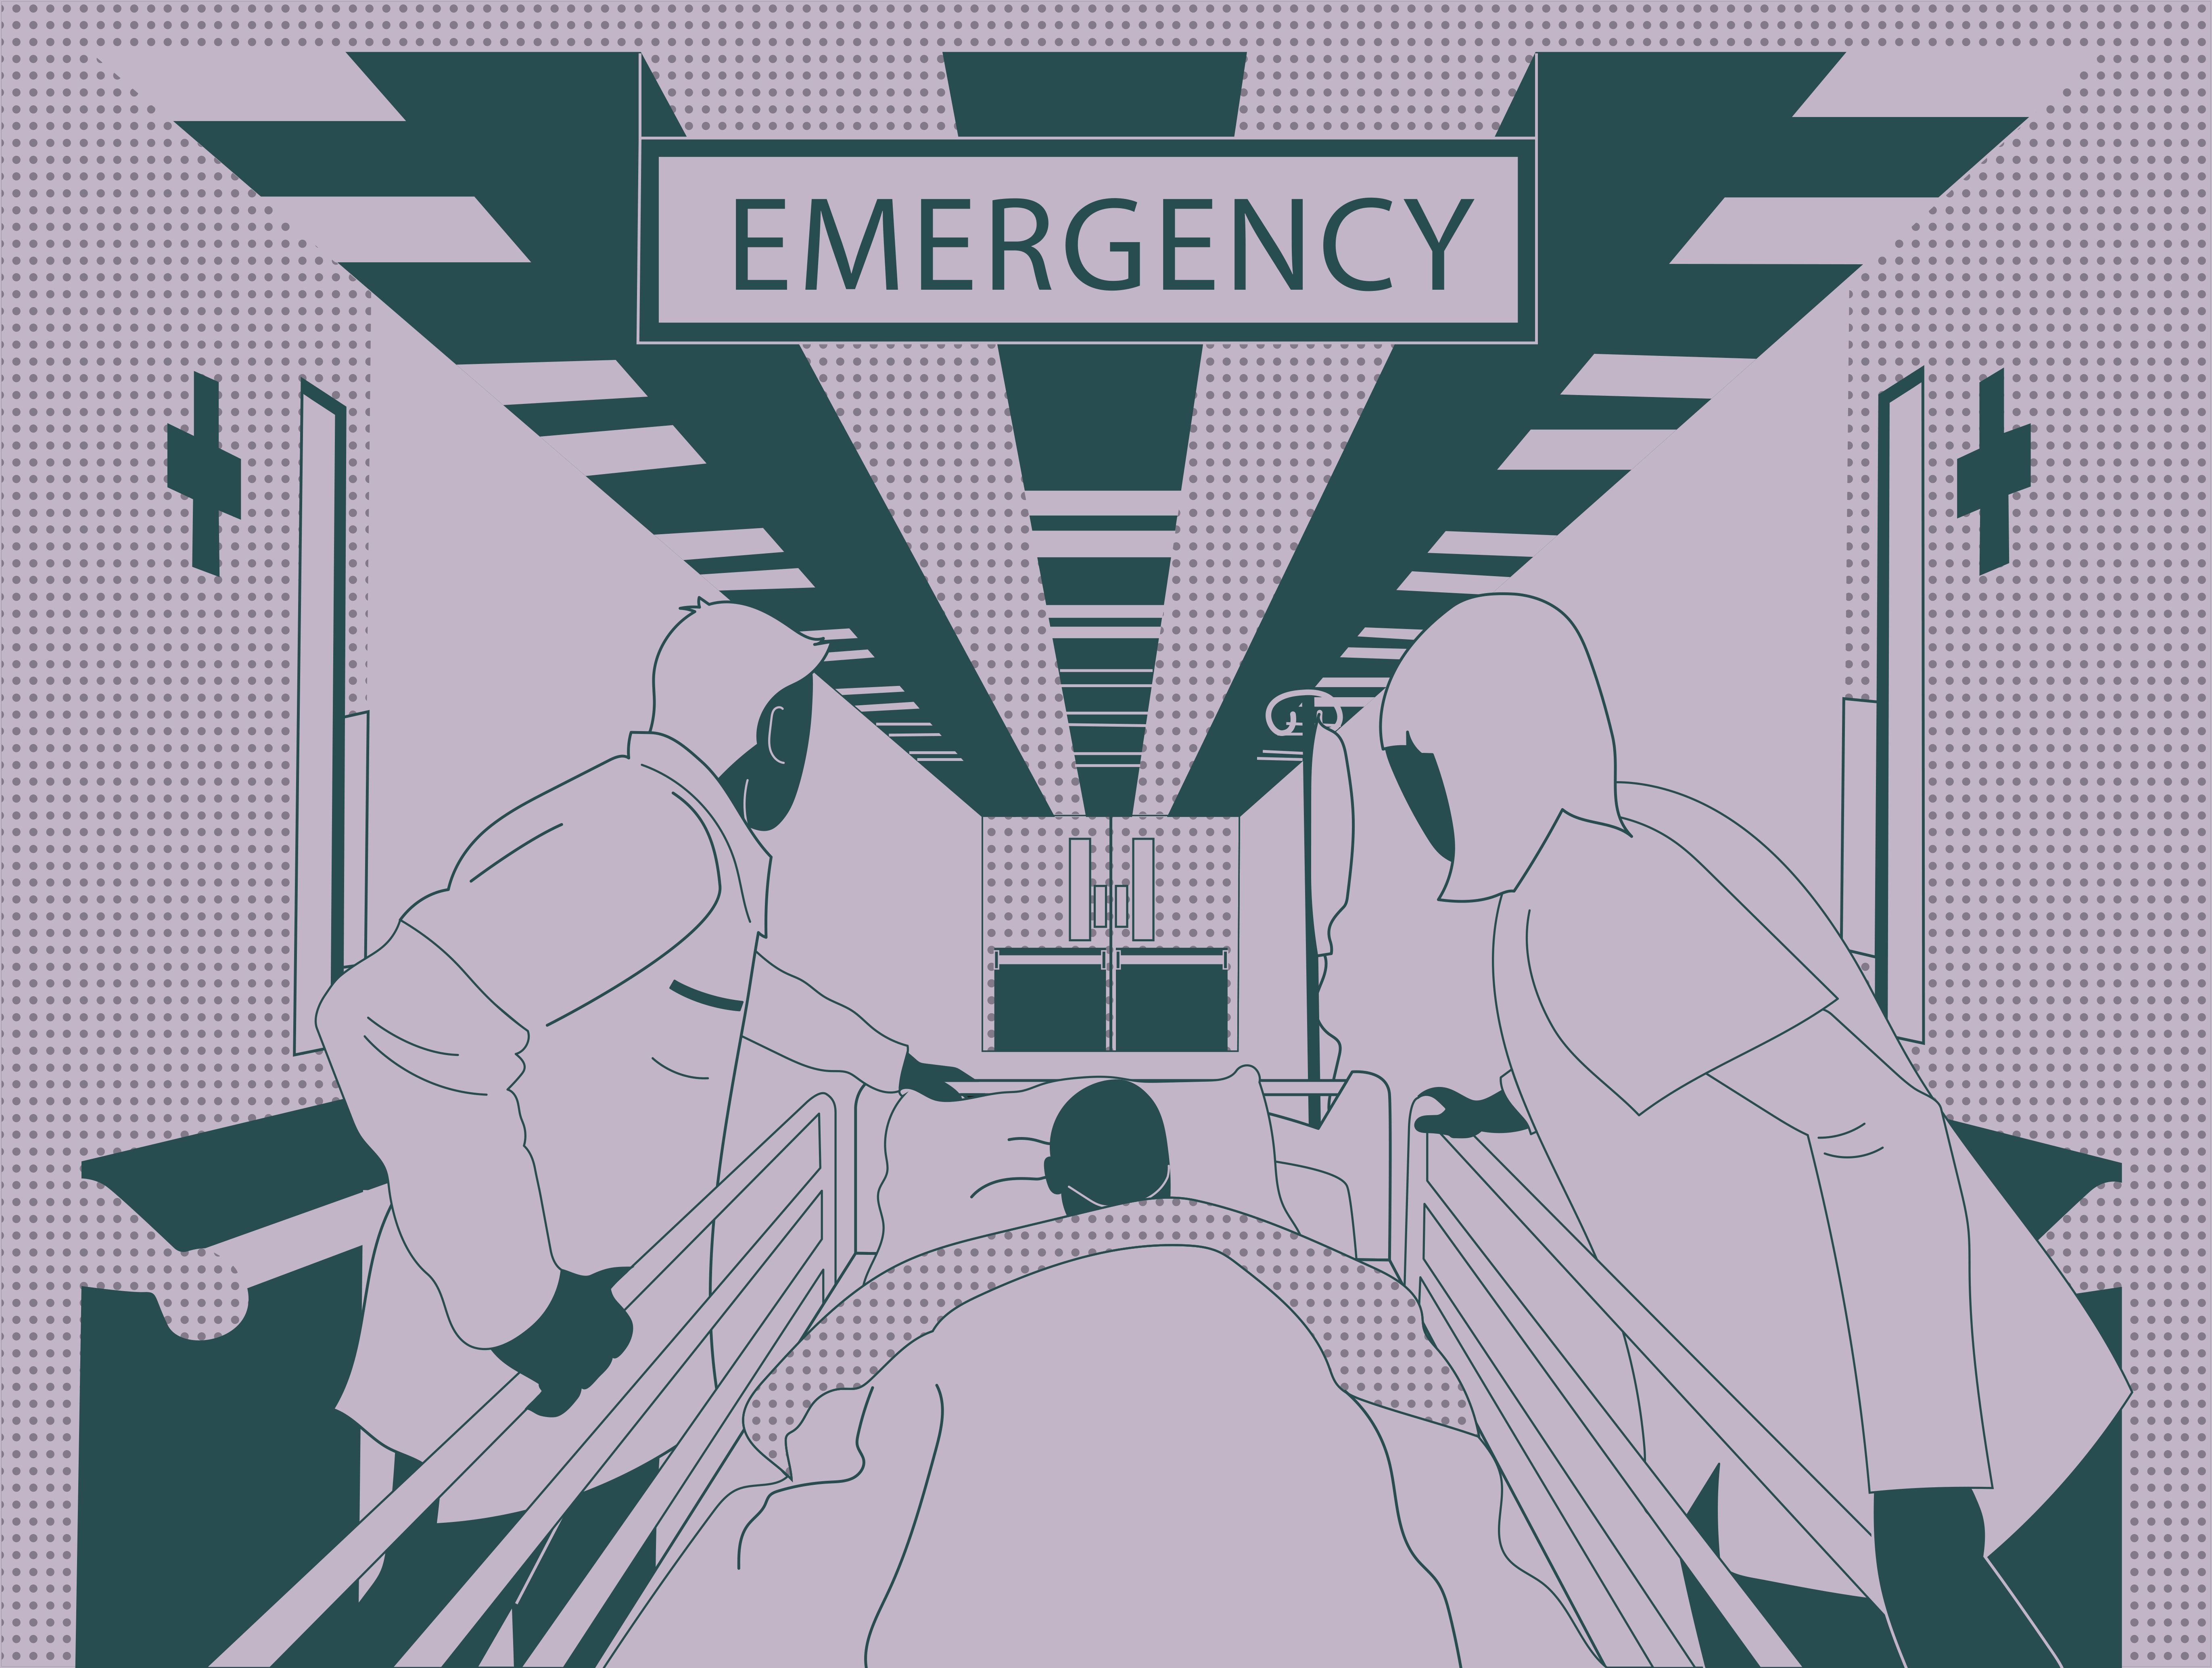 Emergency physicians hold the line at the forefront of medical response